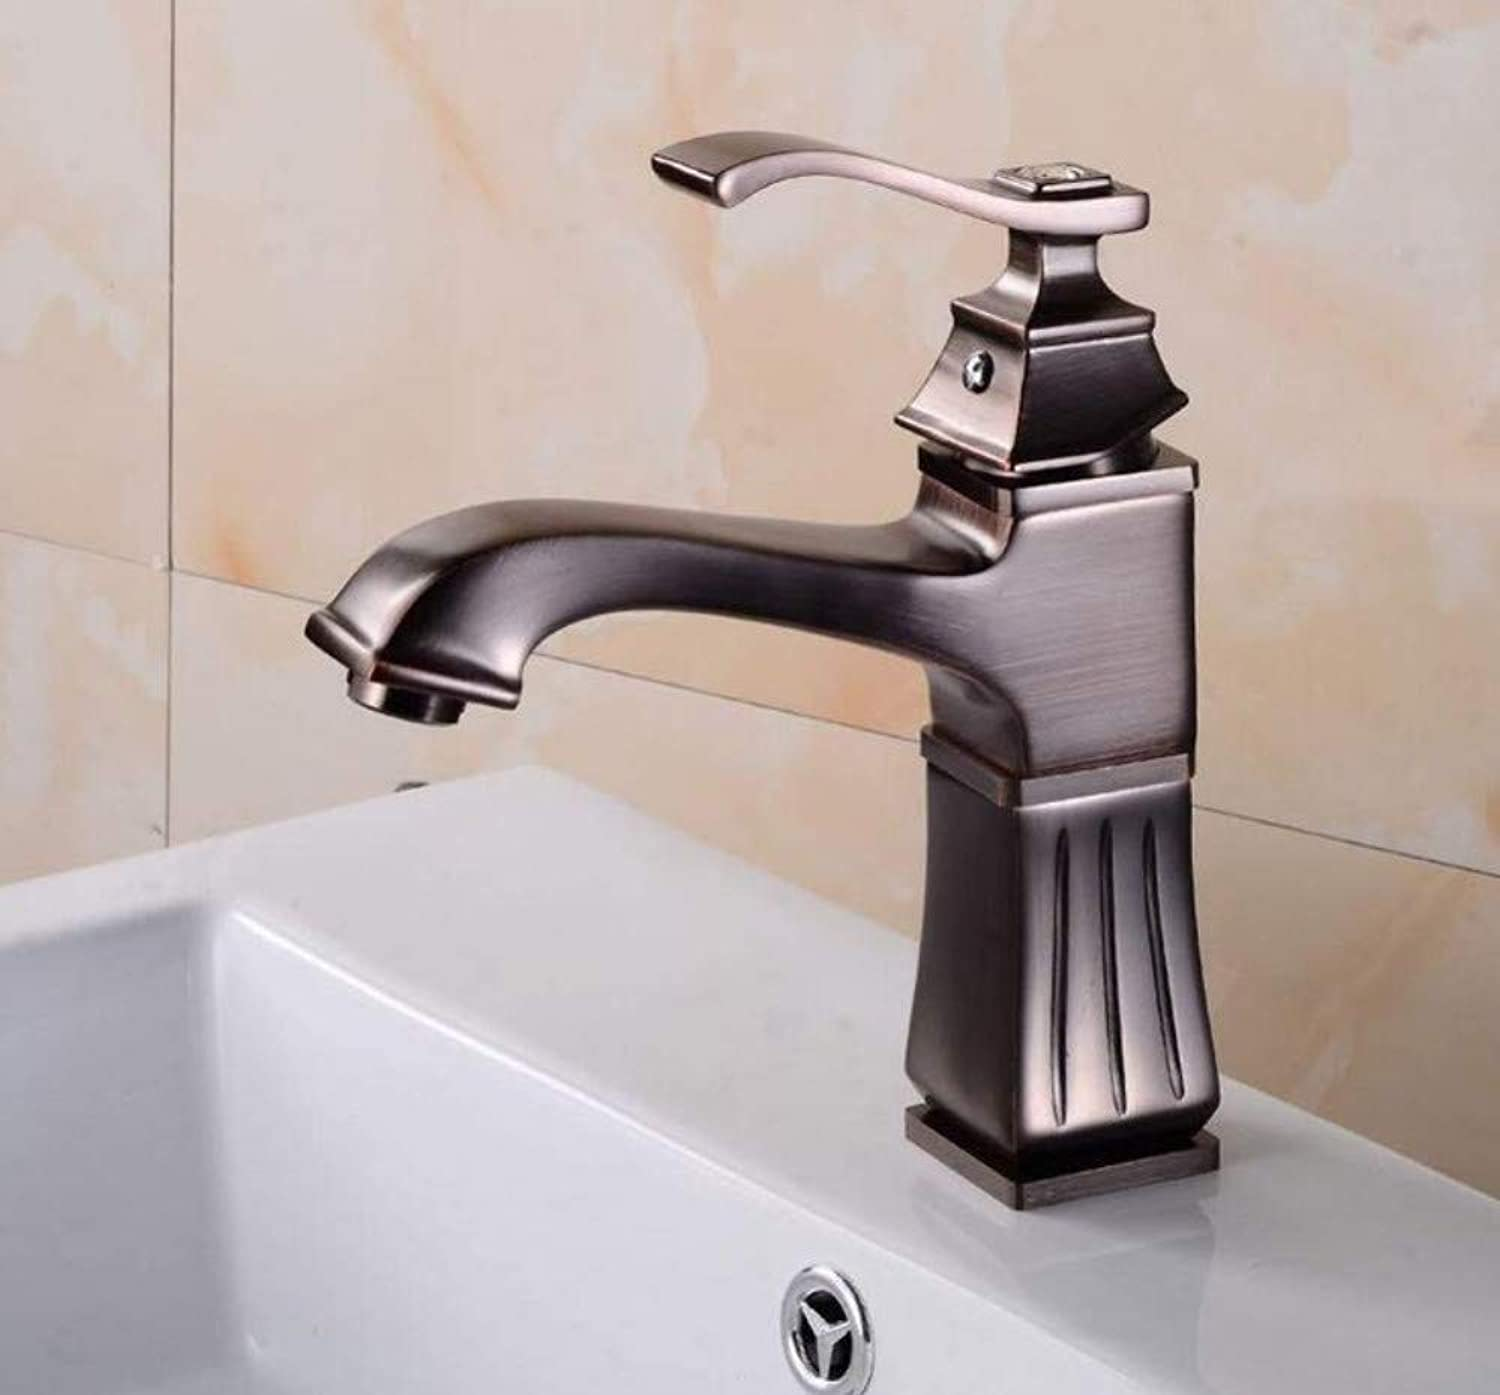 Waterfall Bathroom Sink Mixer Faucet Basin Faucet Square Hot and Cold Basin Faucet Bathroom Faucet Single-Hole Faucet